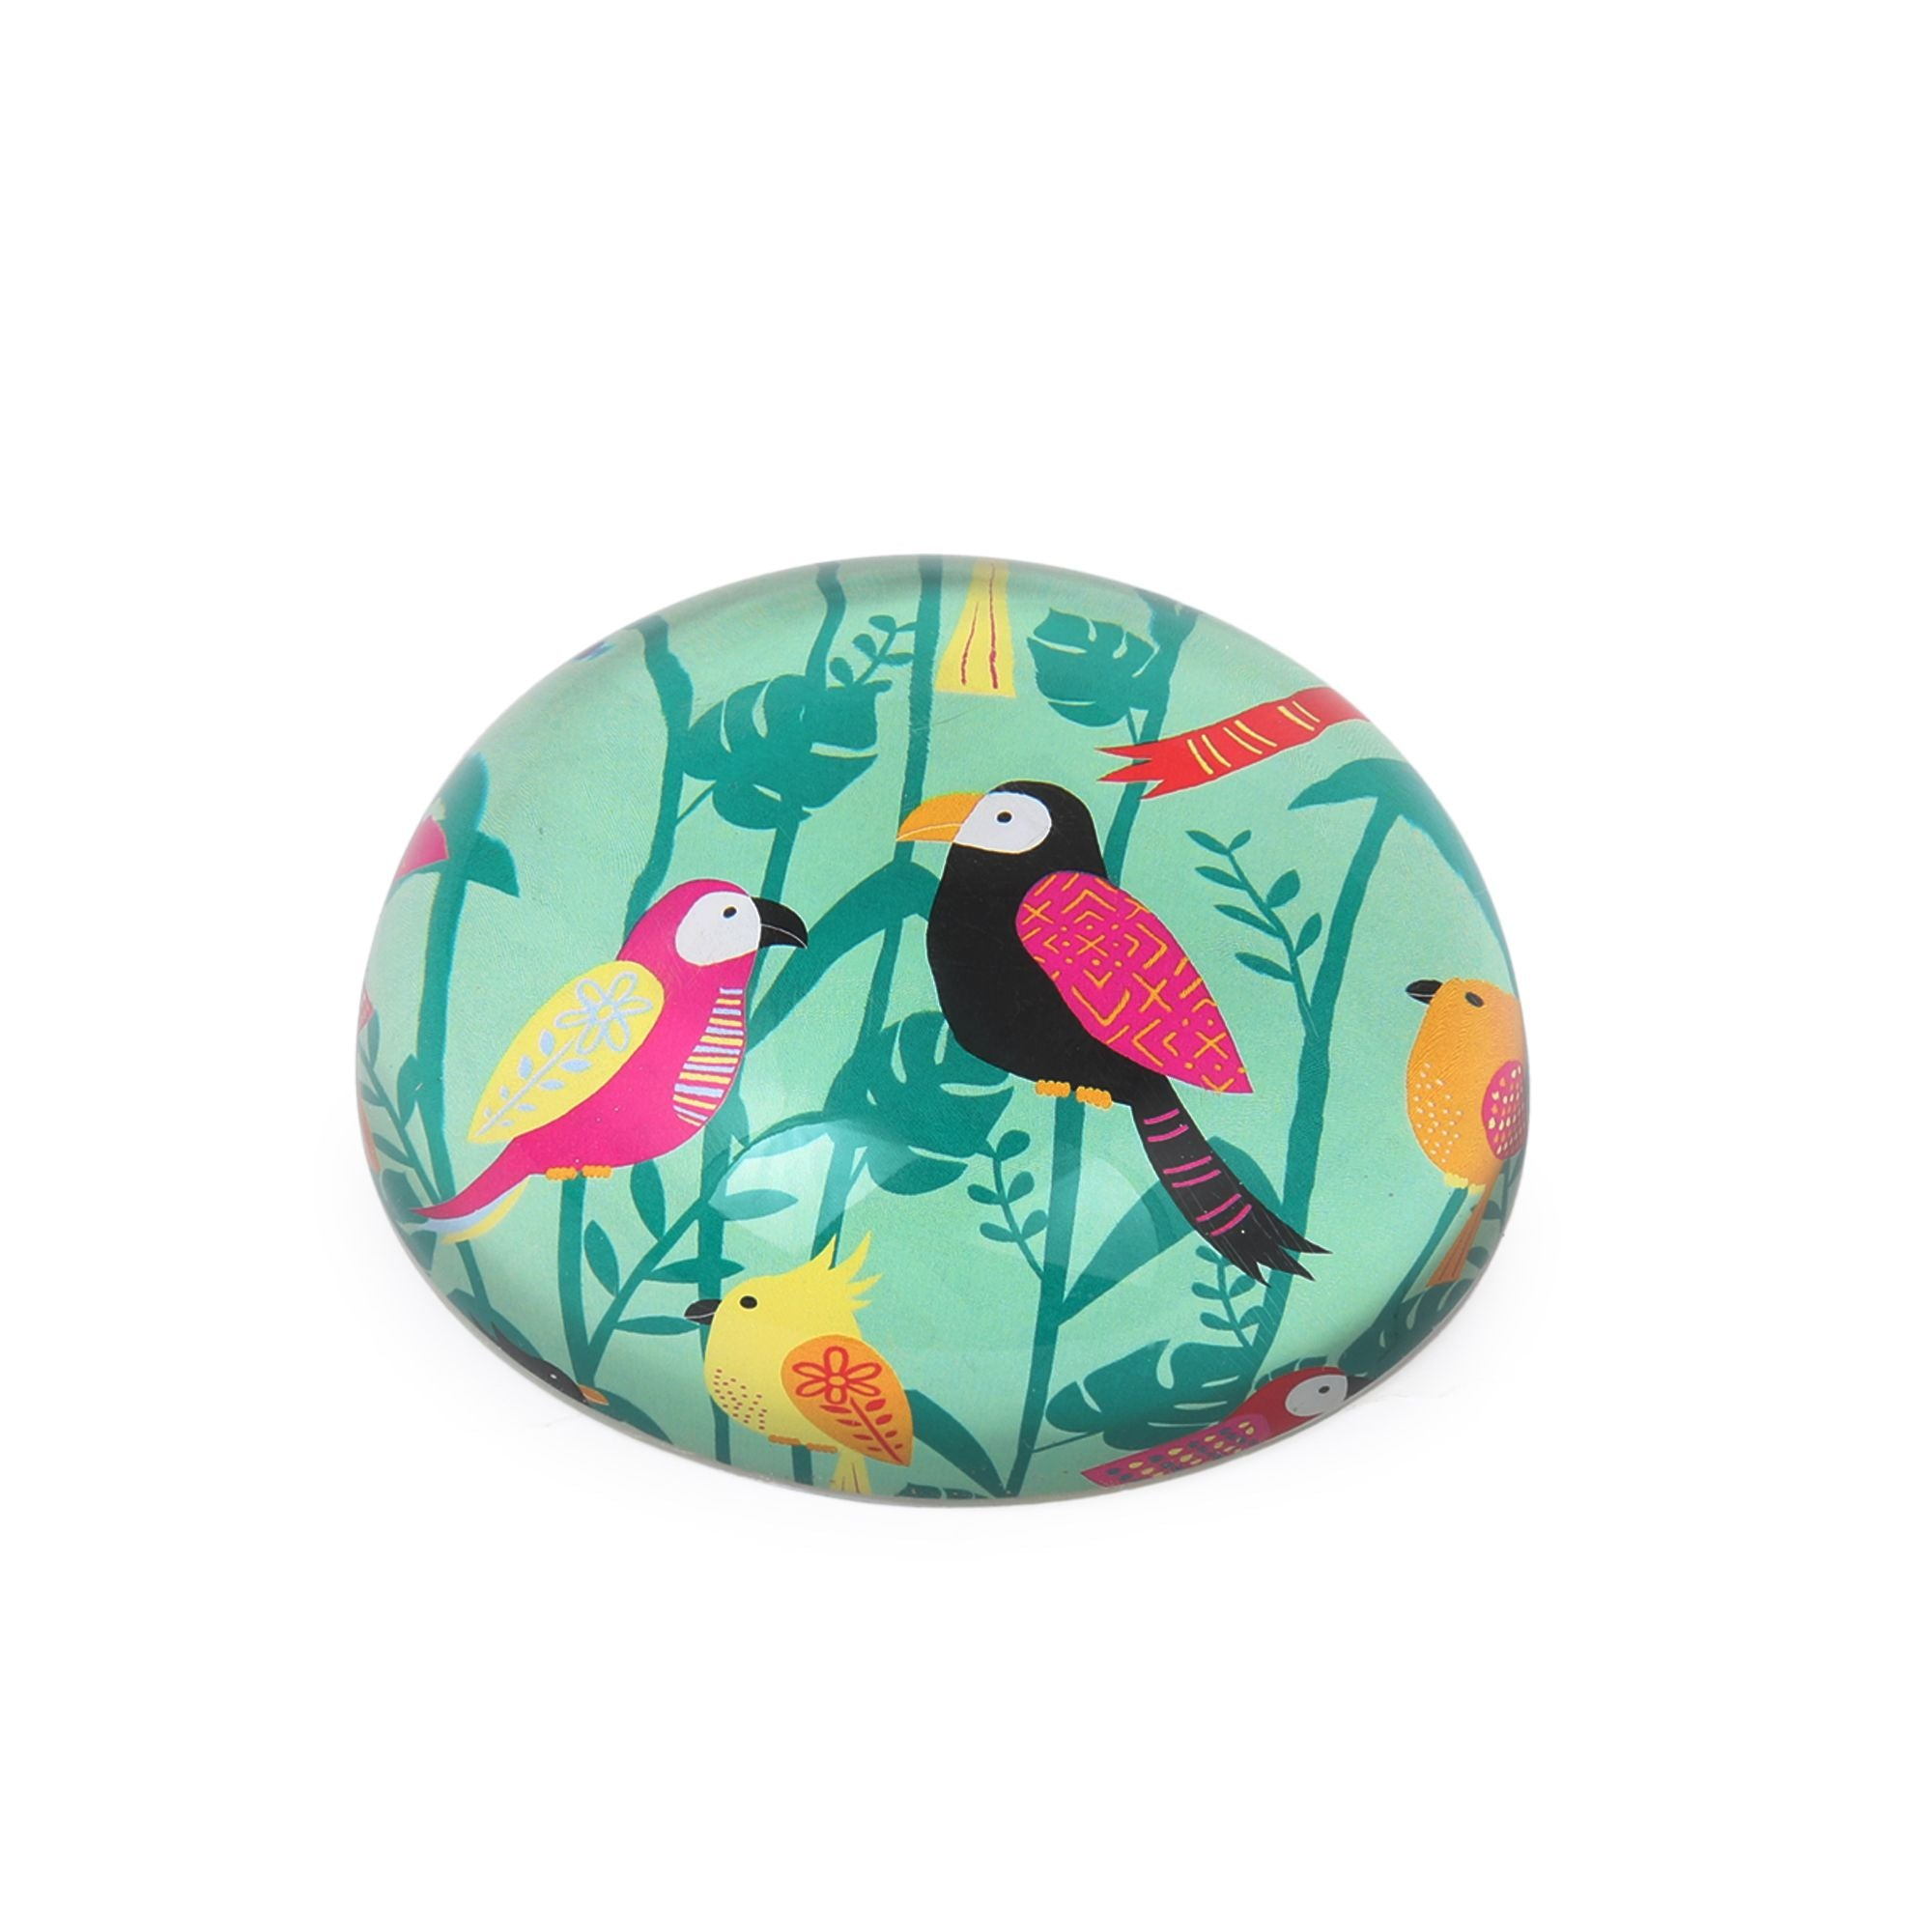 Tropical Birds Paperweight, Quirk Office Accessory, Resin Paperweight